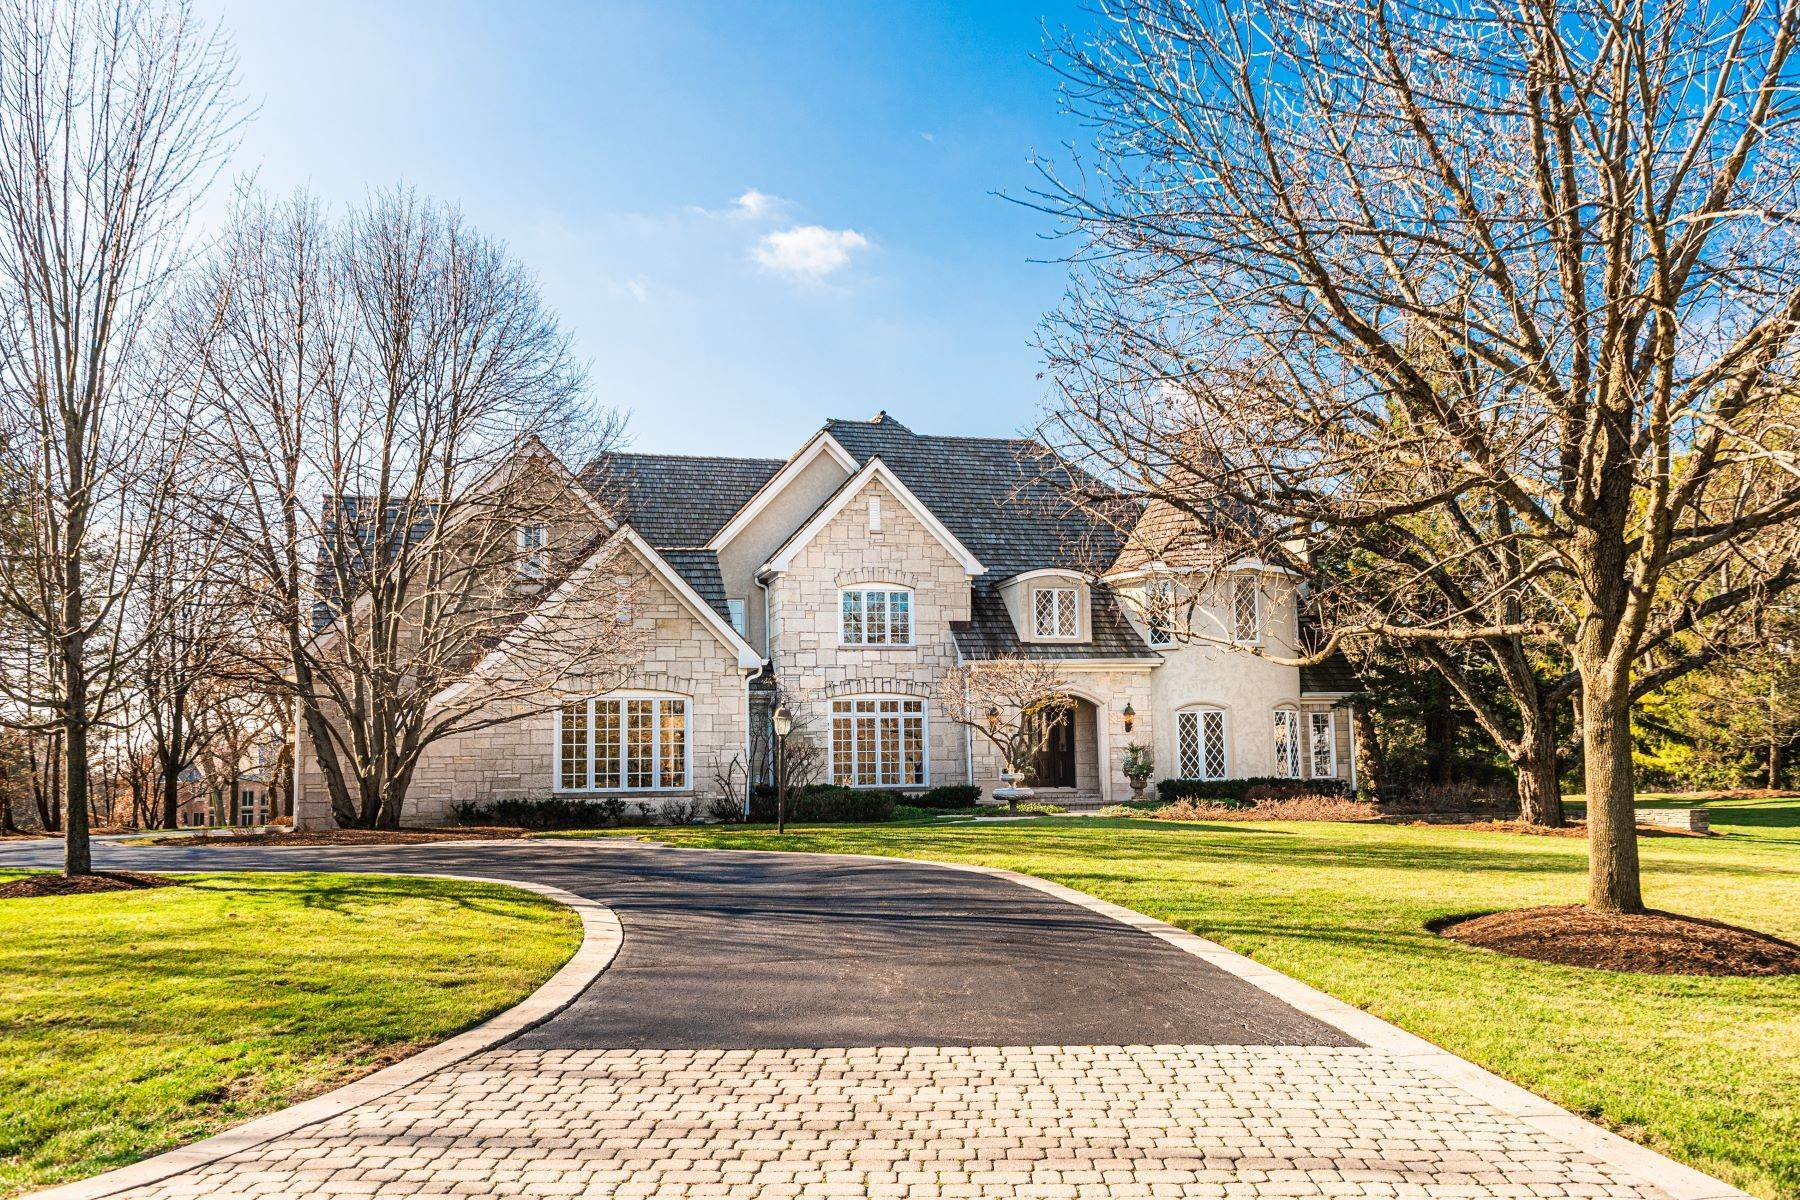 Single Family Homes for Active at Extraordinary Character 1 Kensington Drive North Barrington, Illinois 60010 United States